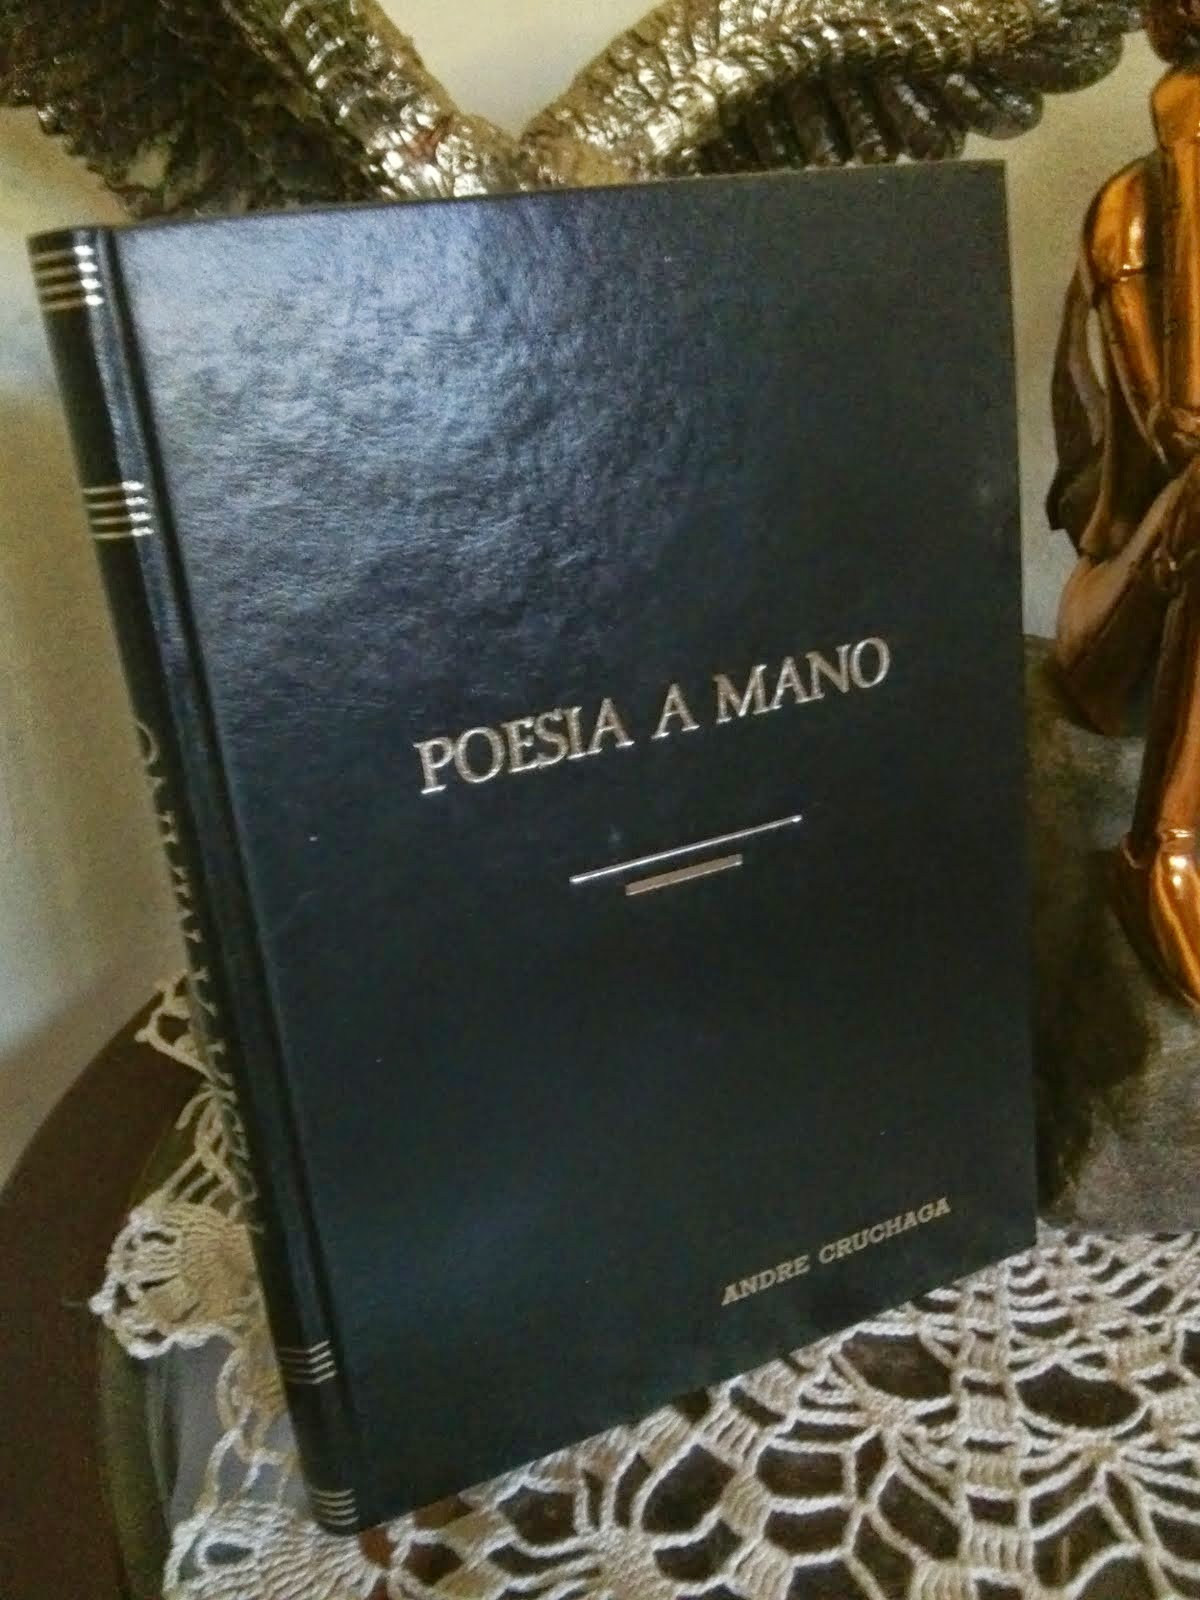 POESÍA A MANO (ANTOLOGÍA)